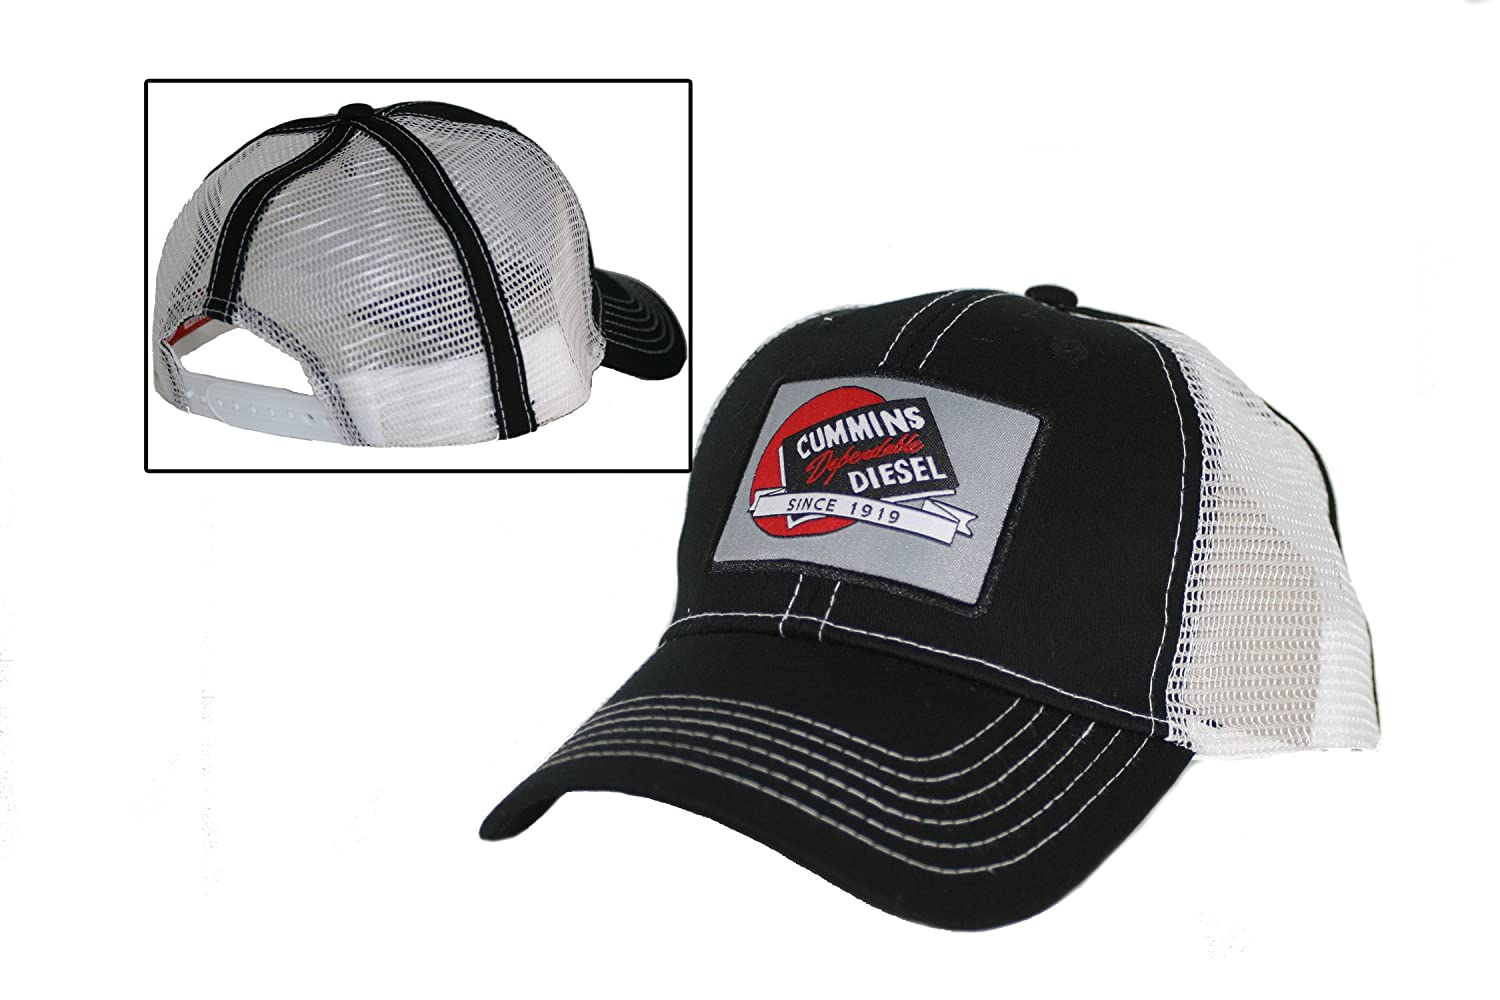 Amazon.com  Cummins Diesel Engines Red Ball Trucker Mesh Snapback Cap Hat   Sports   Outdoors d24b057d986